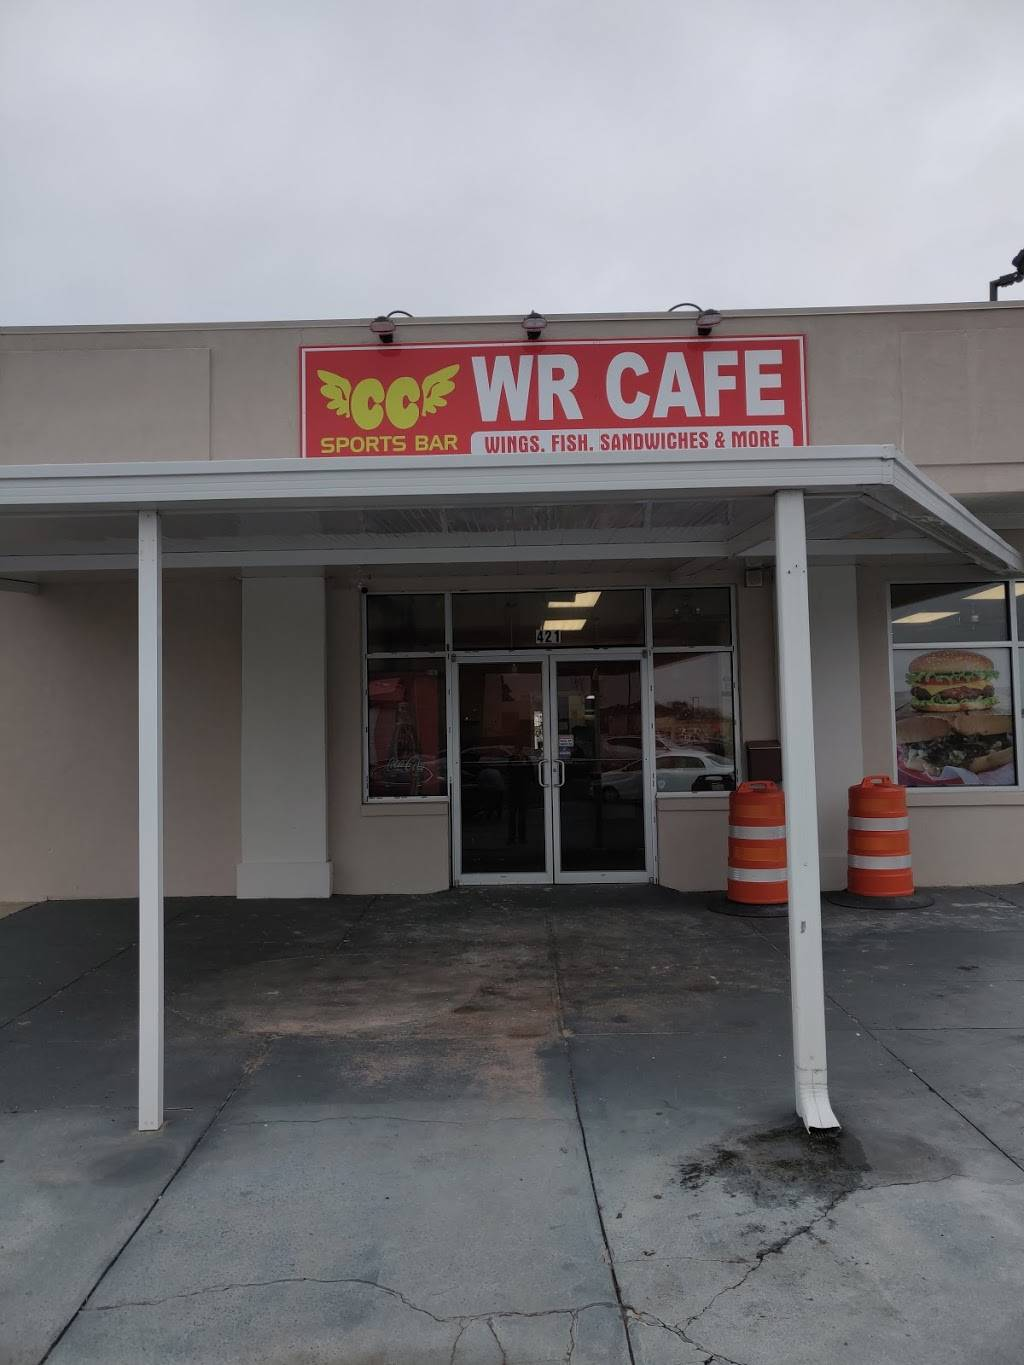 WR CAFE | restaurant | 421 N Commercial Cir, Warner Robins, GA 31093, USA | 4782734200 OR +1 478-273-4200